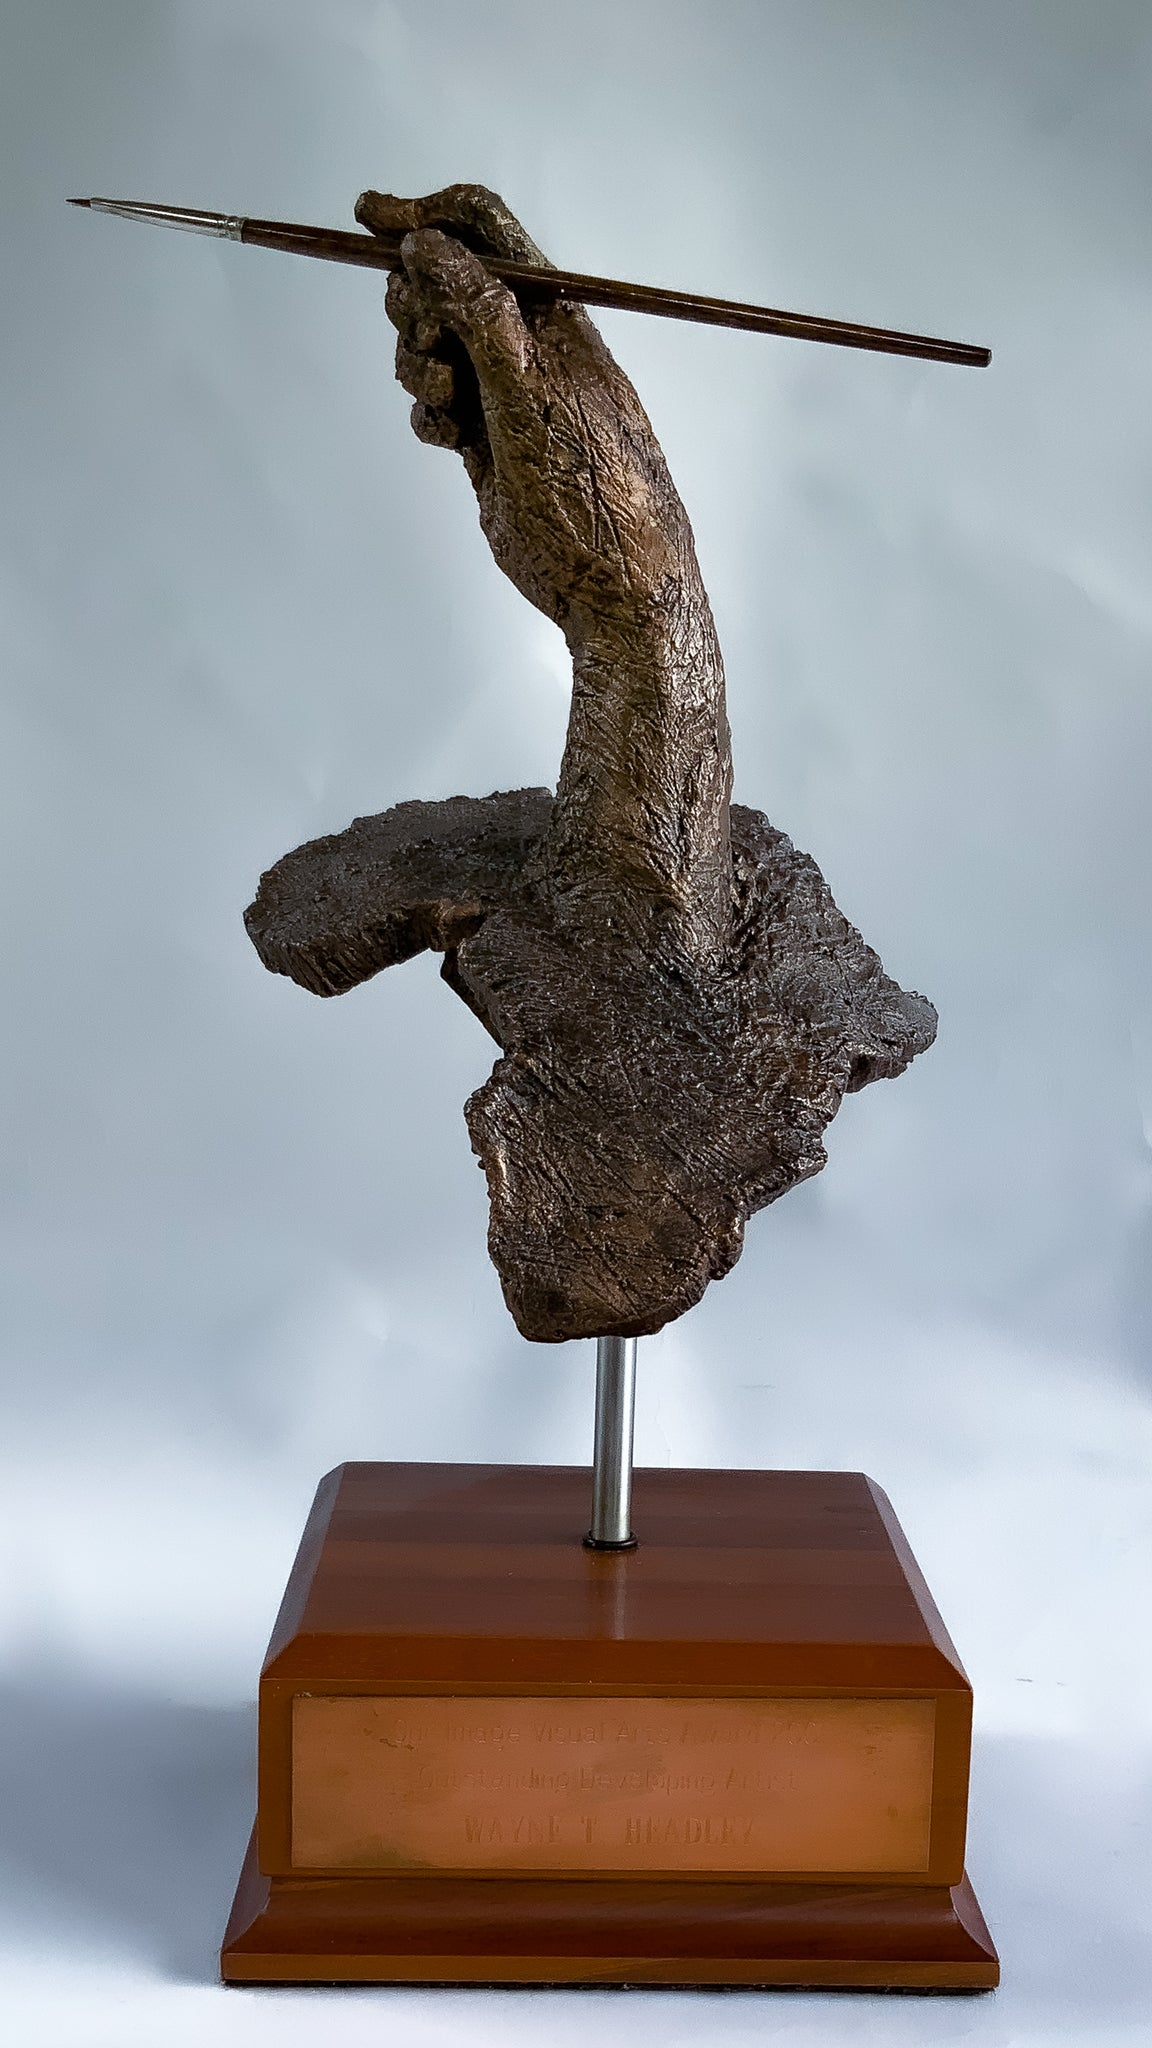 African Artist | Custom Award | Trophy | Right hand with paint brush poised emerges from the African Continent